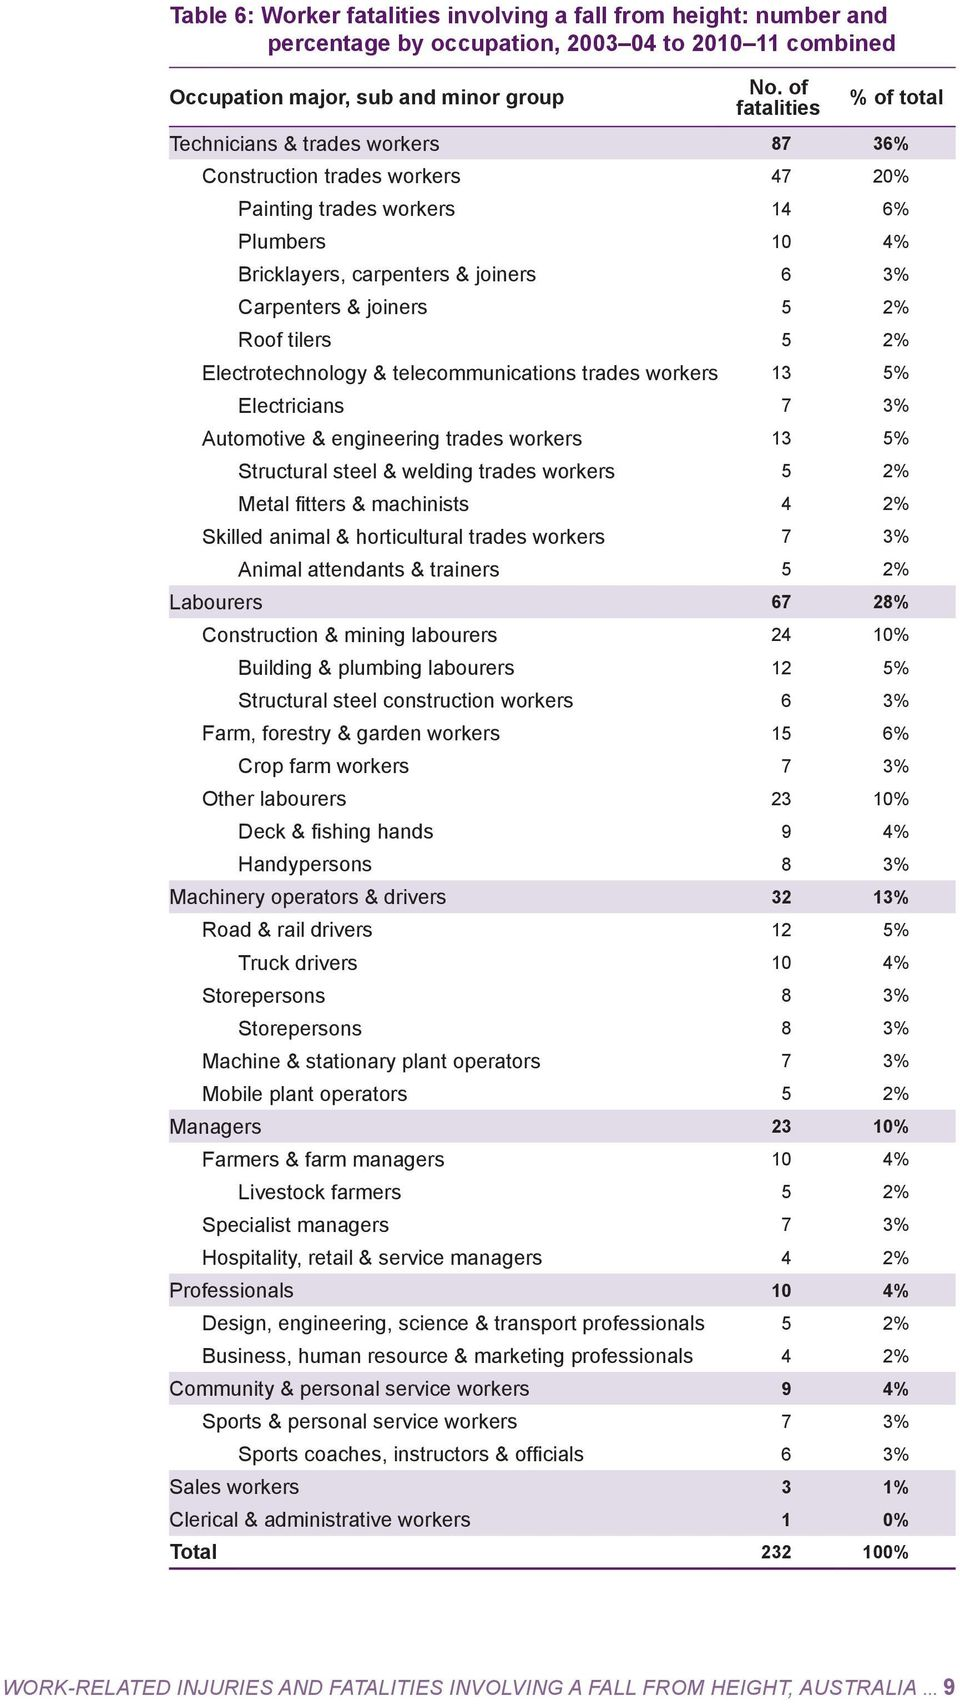 joiners 5 2% Roof tilers 5 2% Electrotechnology & telecommunications trades workers 13 5% Electricians 7 3% Automotive & engineering trades workers 13 5% Structural steel & welding trades workers 5